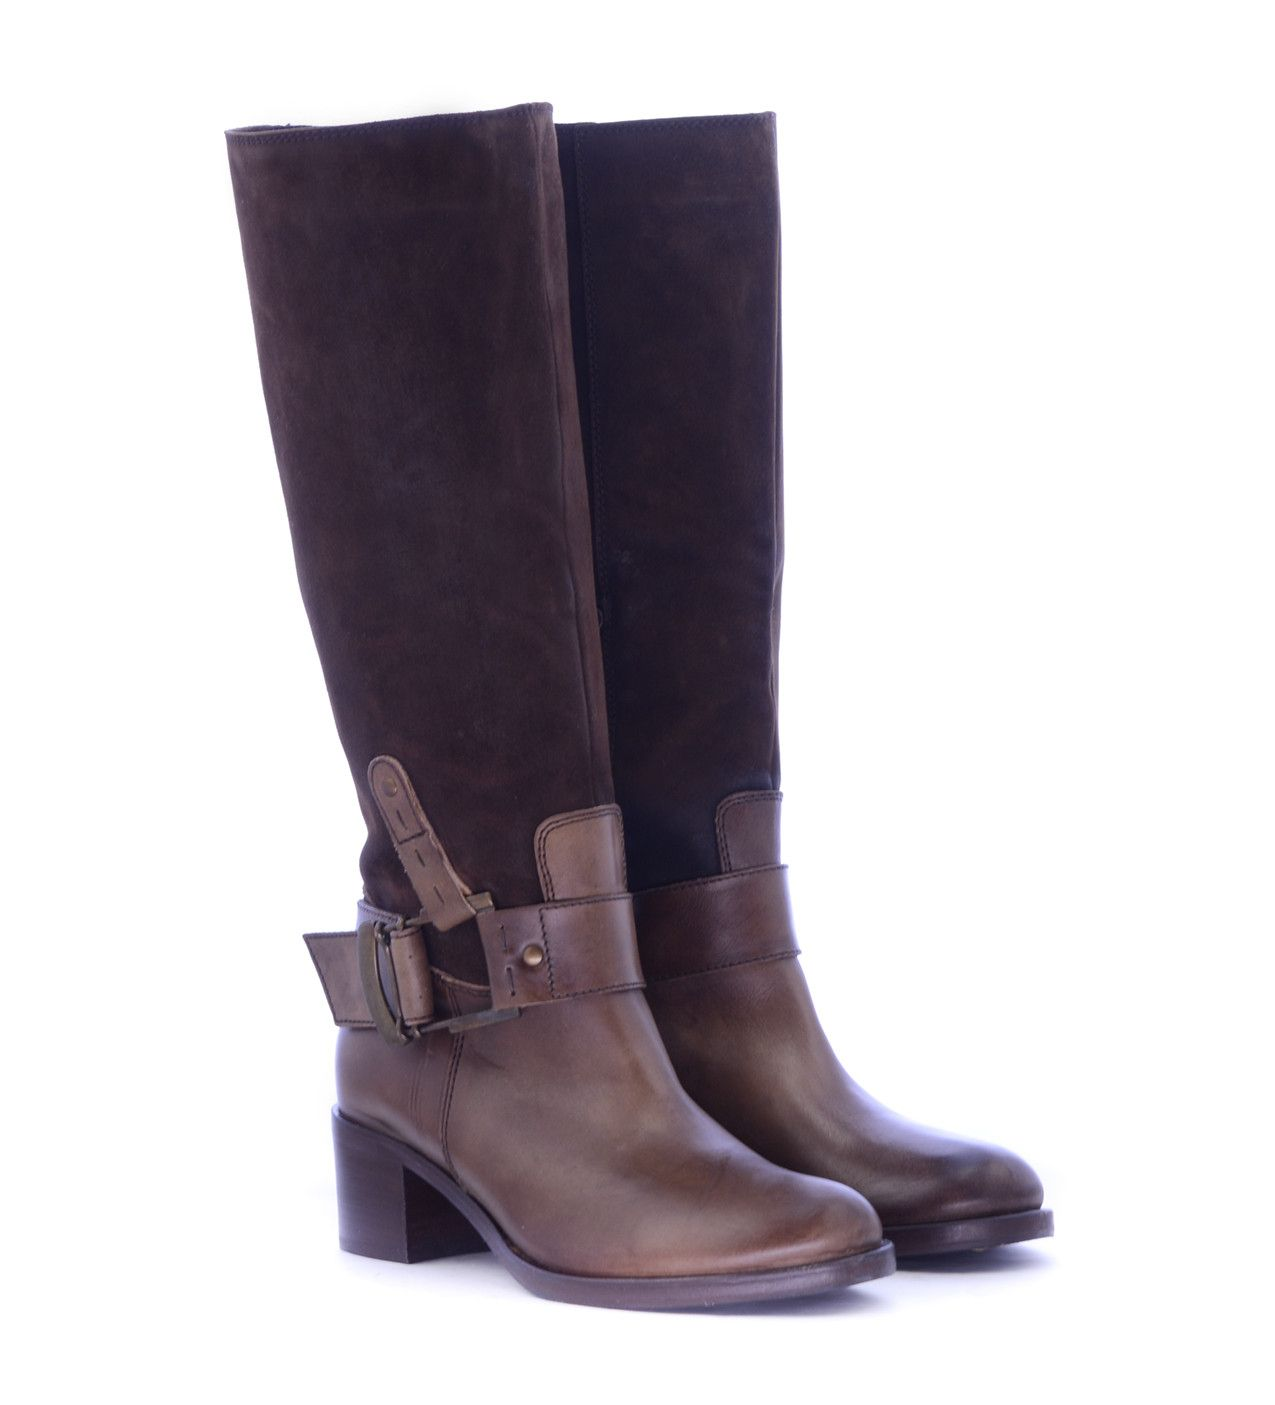 ce04fb9d0a Leather Women Boots Αναβατικές Μπότες